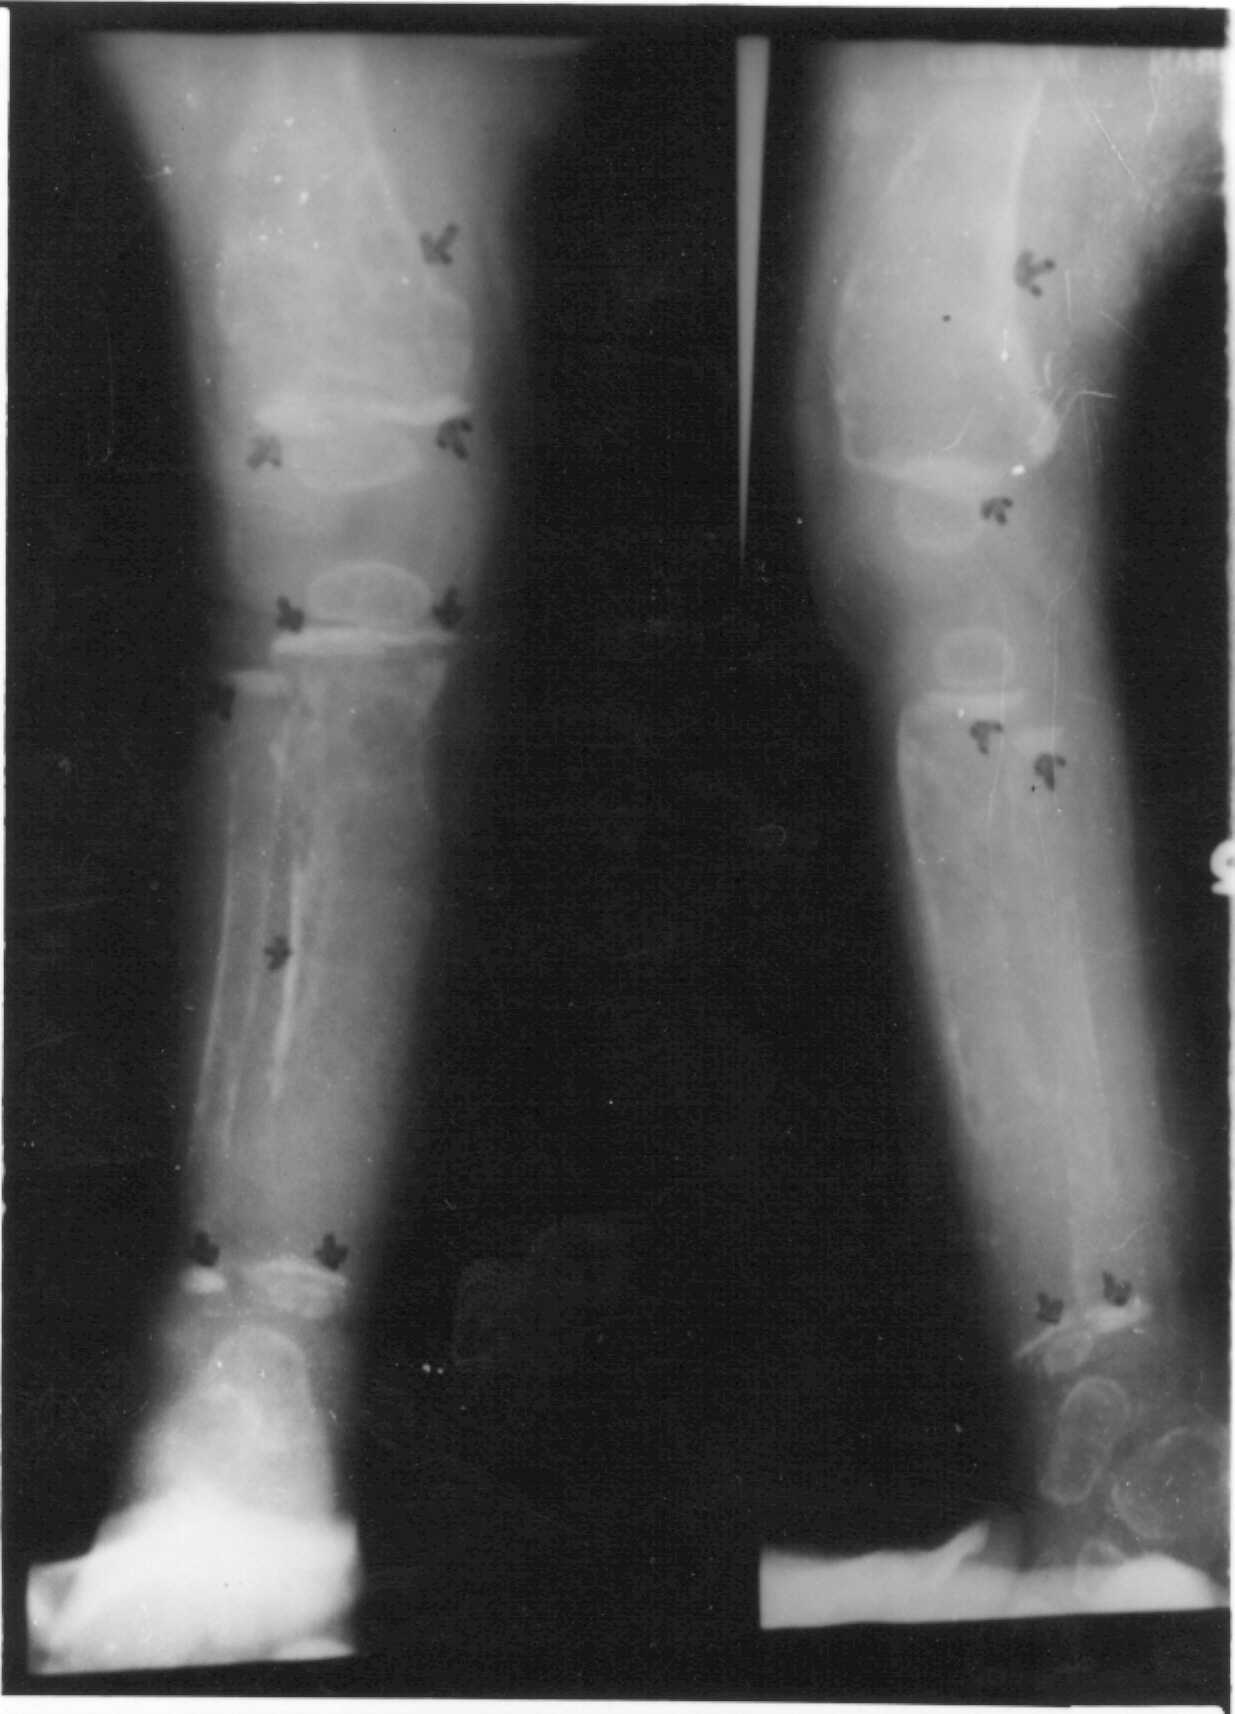 indian pediatrics editorialx ray of the lower limb showing (i) diffuse osteoporosis with moth eaten cystic areas in the lower end of femur, (ii) metaphyseal bands of increased